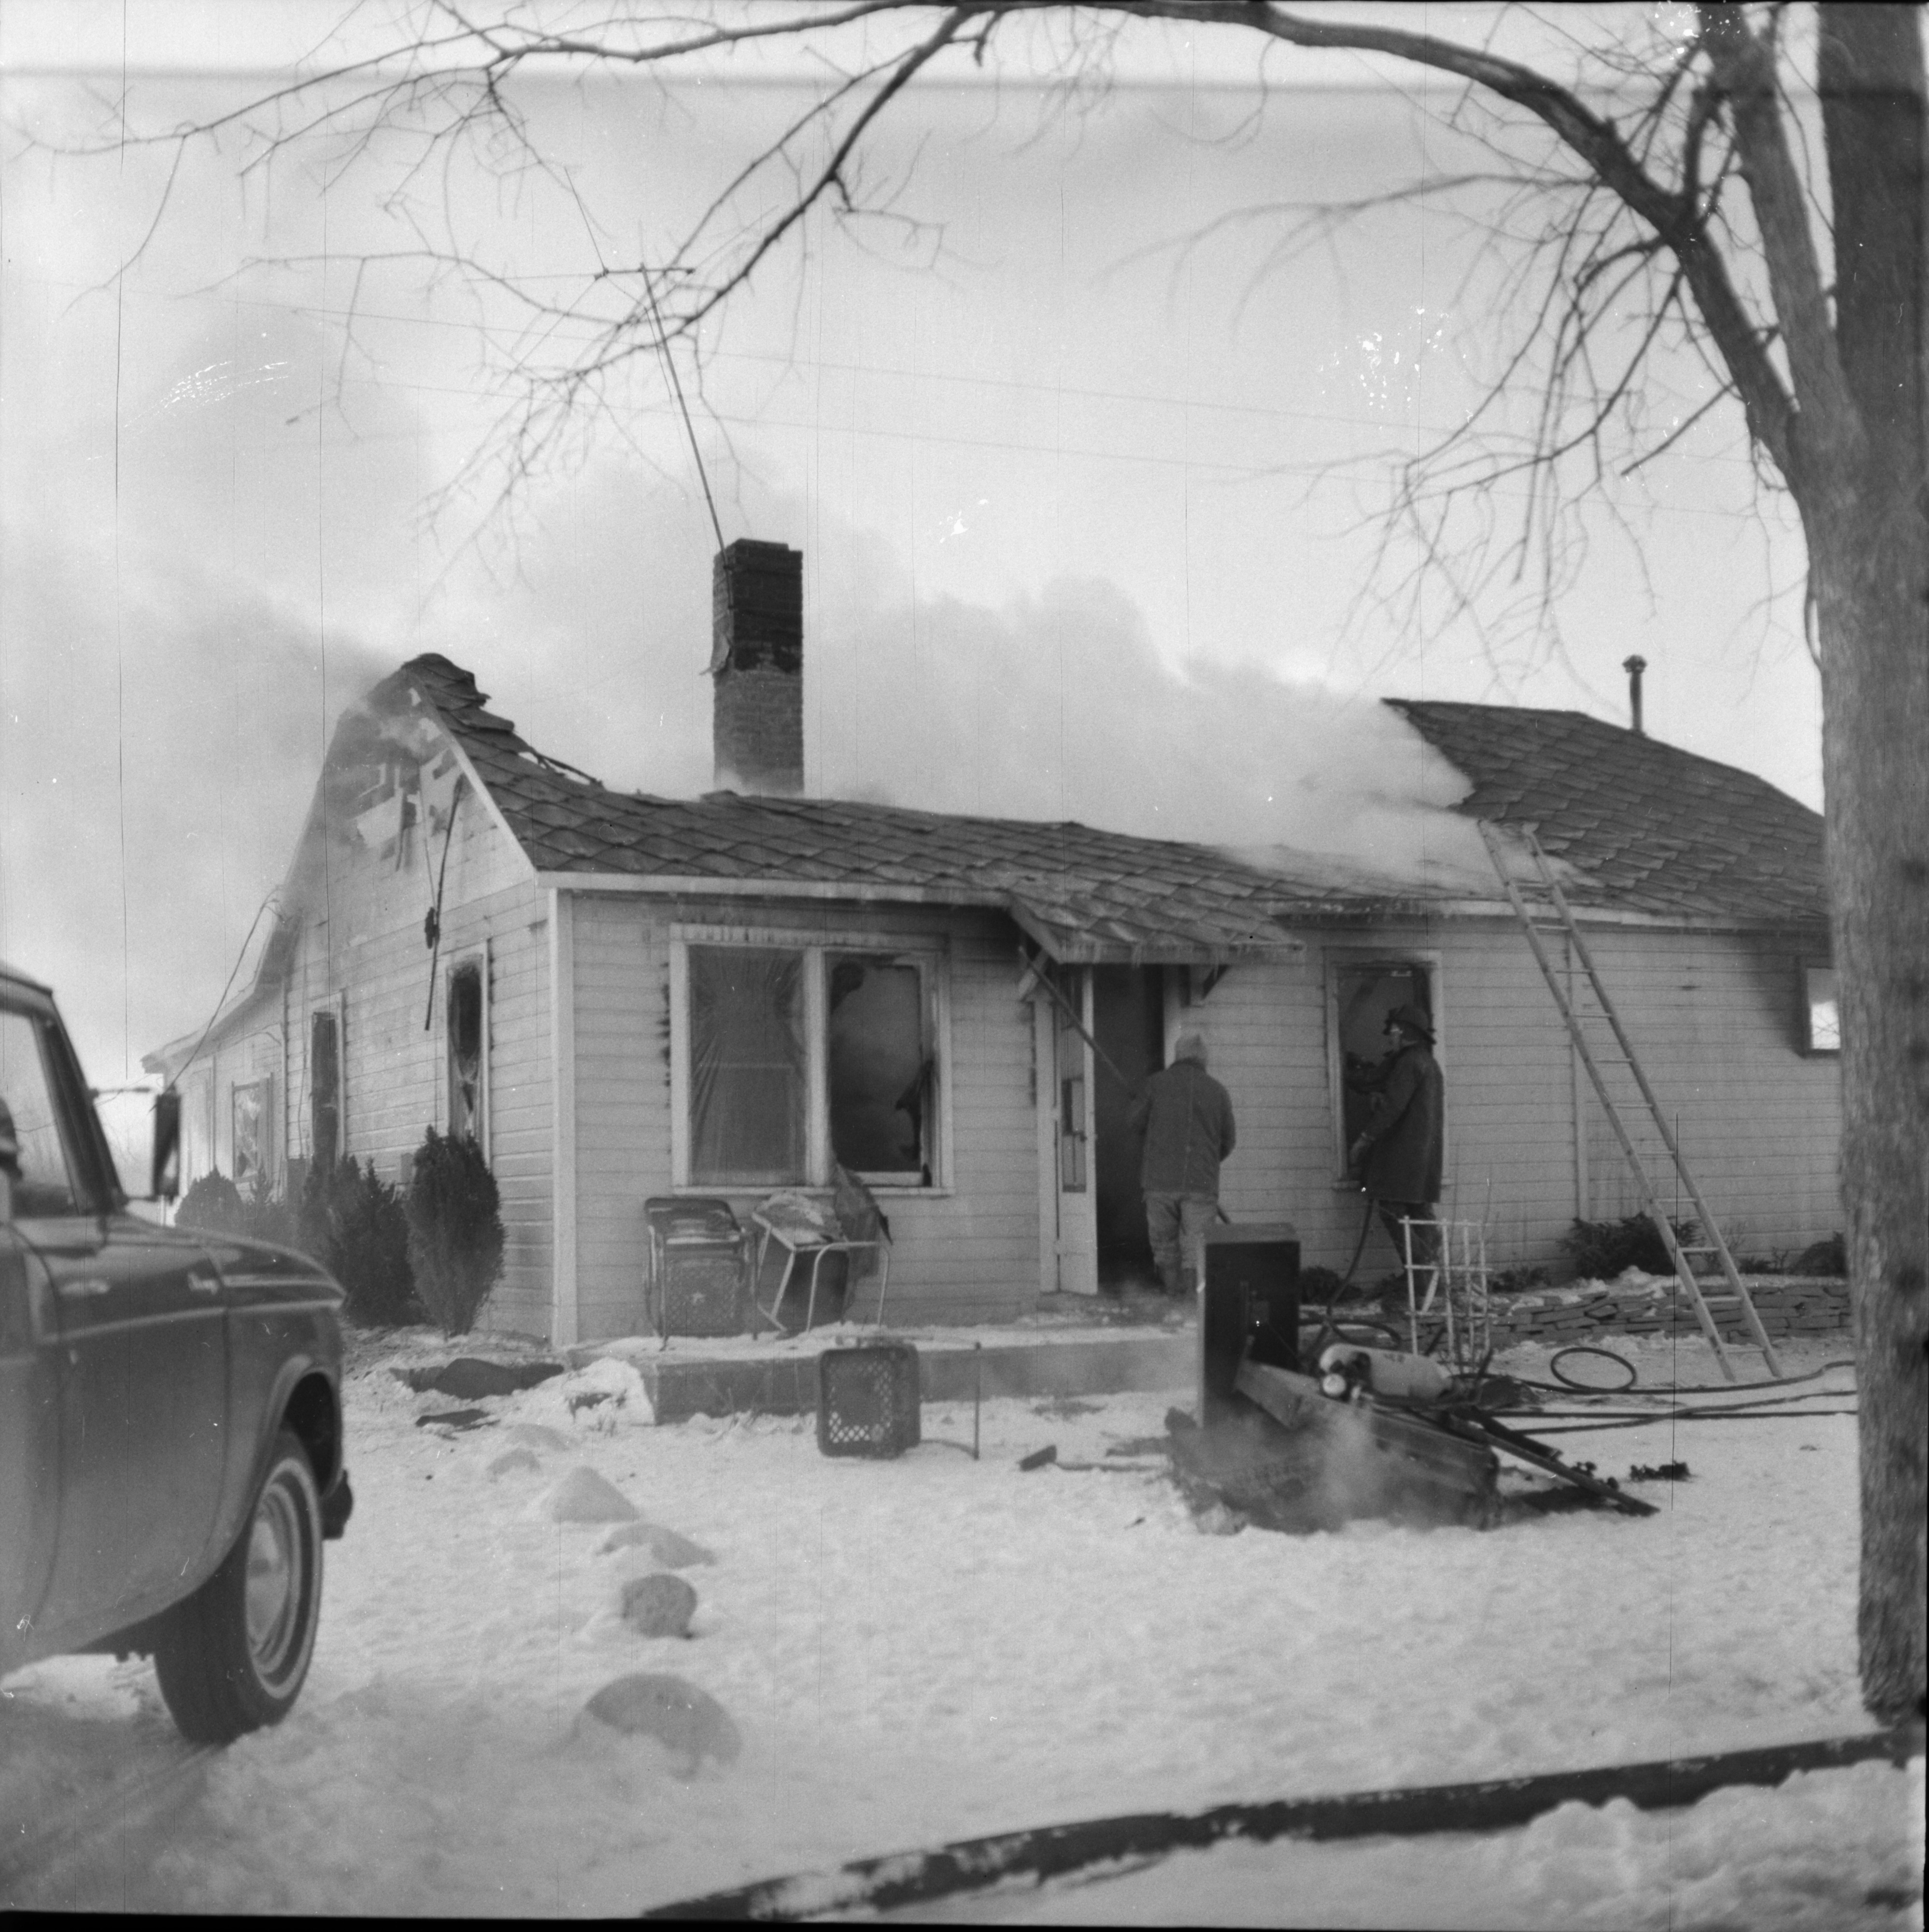 Fire Destroys Home on Ellsworth Rd, February 1965 image